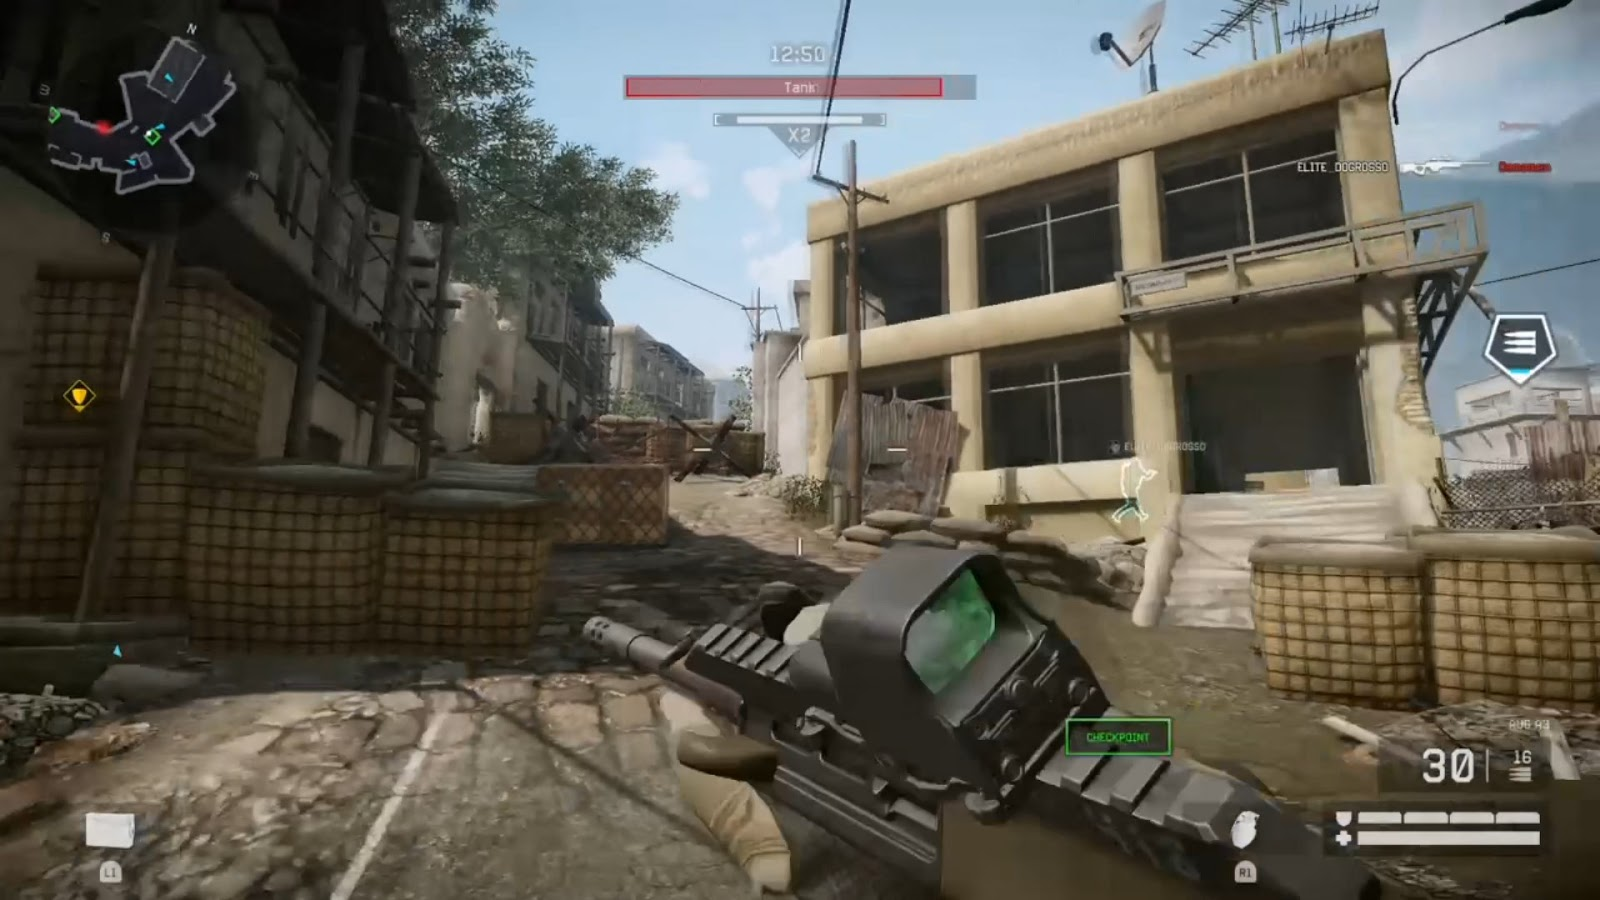 Ps4 Quick Look | Warface (2013) Fun till MEDIC Paywall